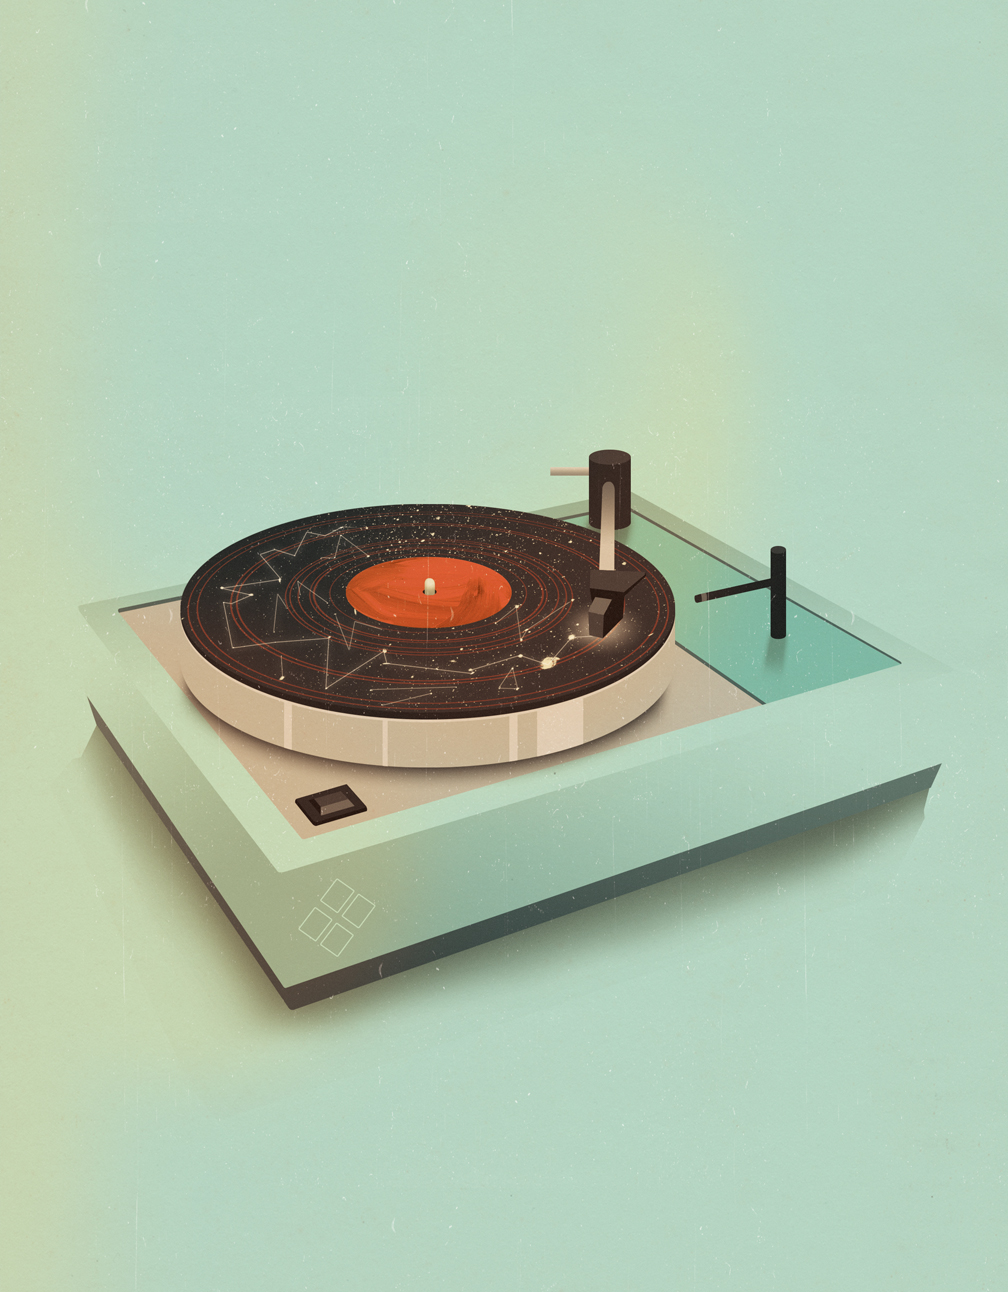 tumblr m3b43da5le1rv4c7ho1 12801 Vintage Mid Century Illustrations by Jack Hughes